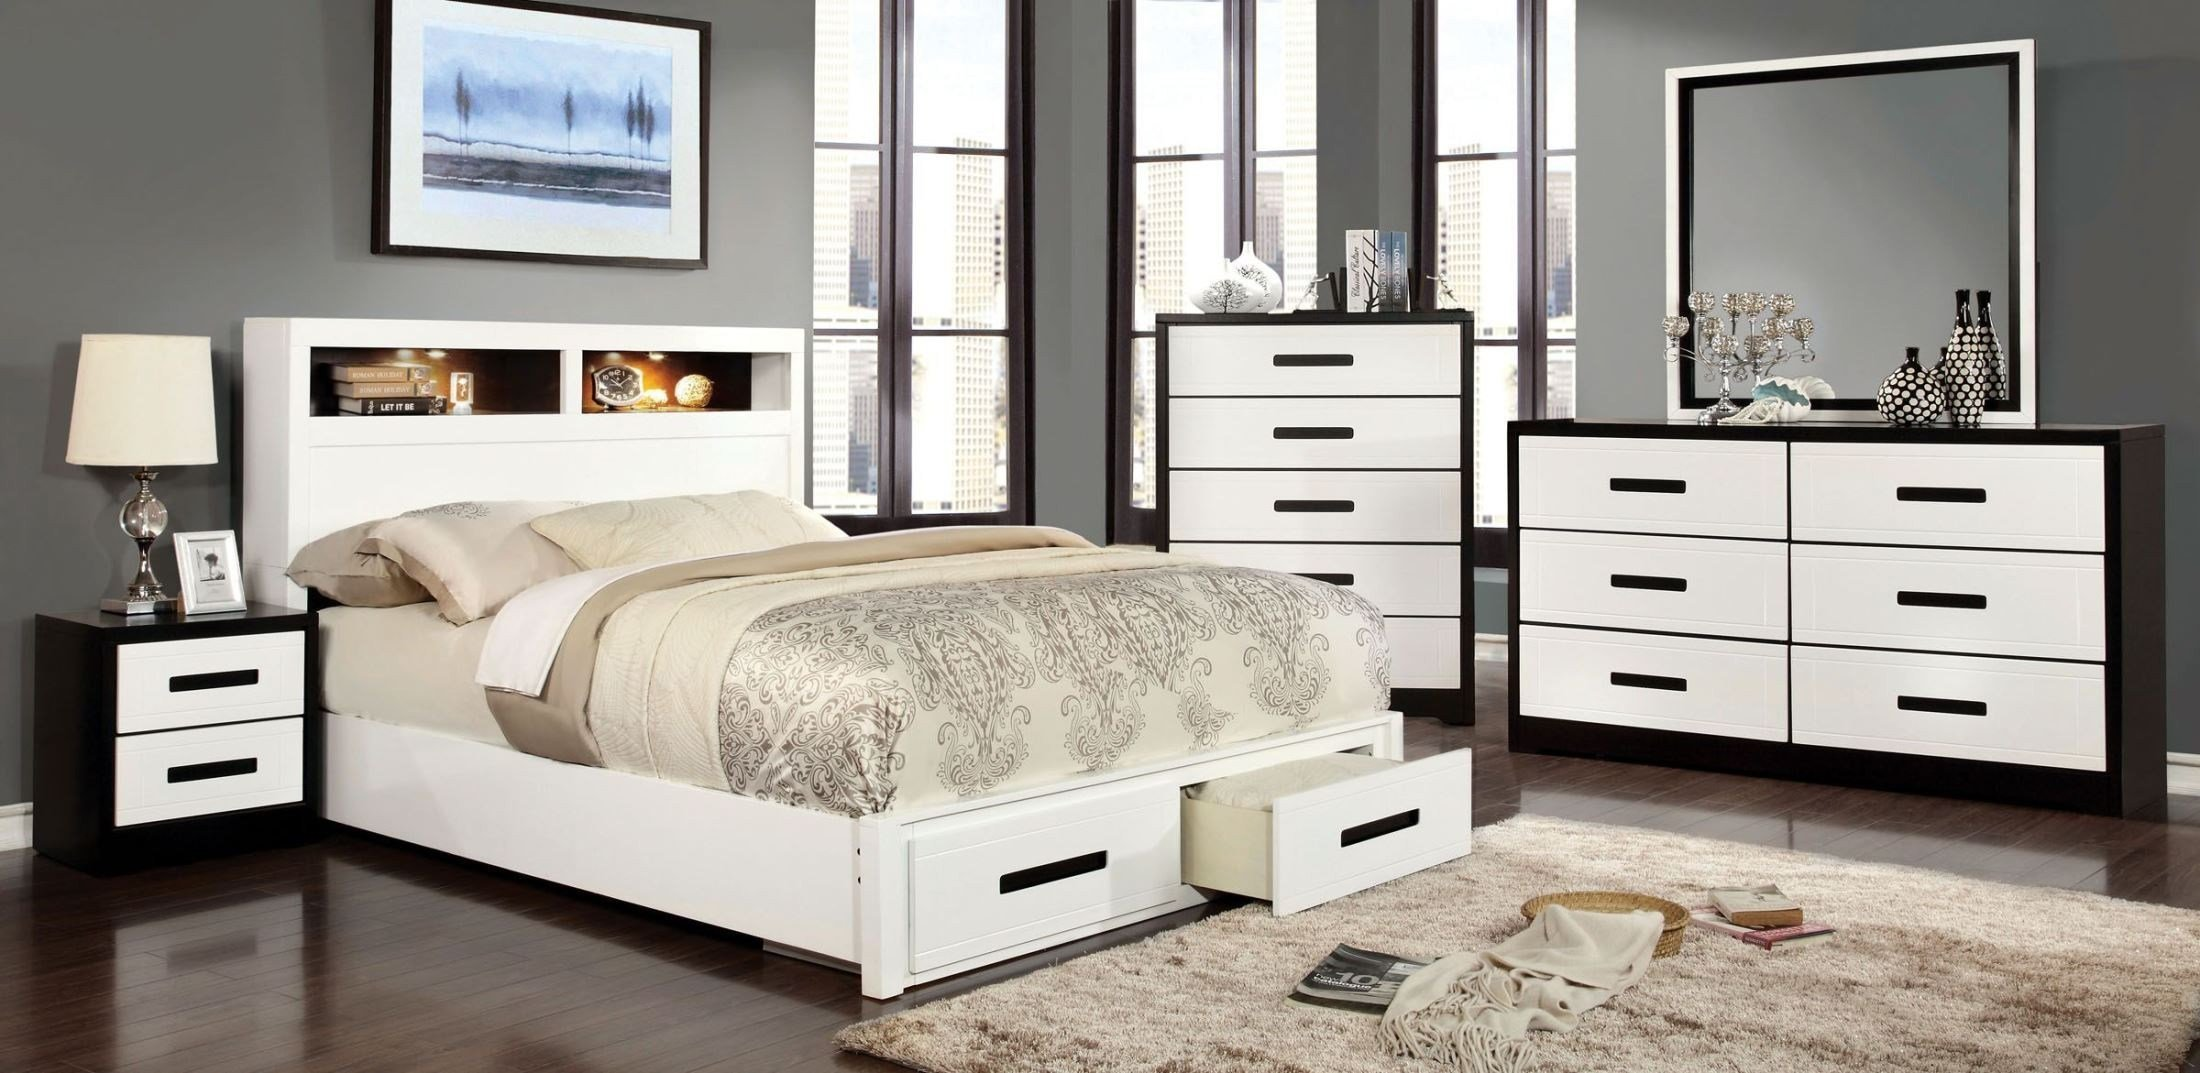 Best Rutger White And Black Storage Bedroom Set From Furniture With Pictures